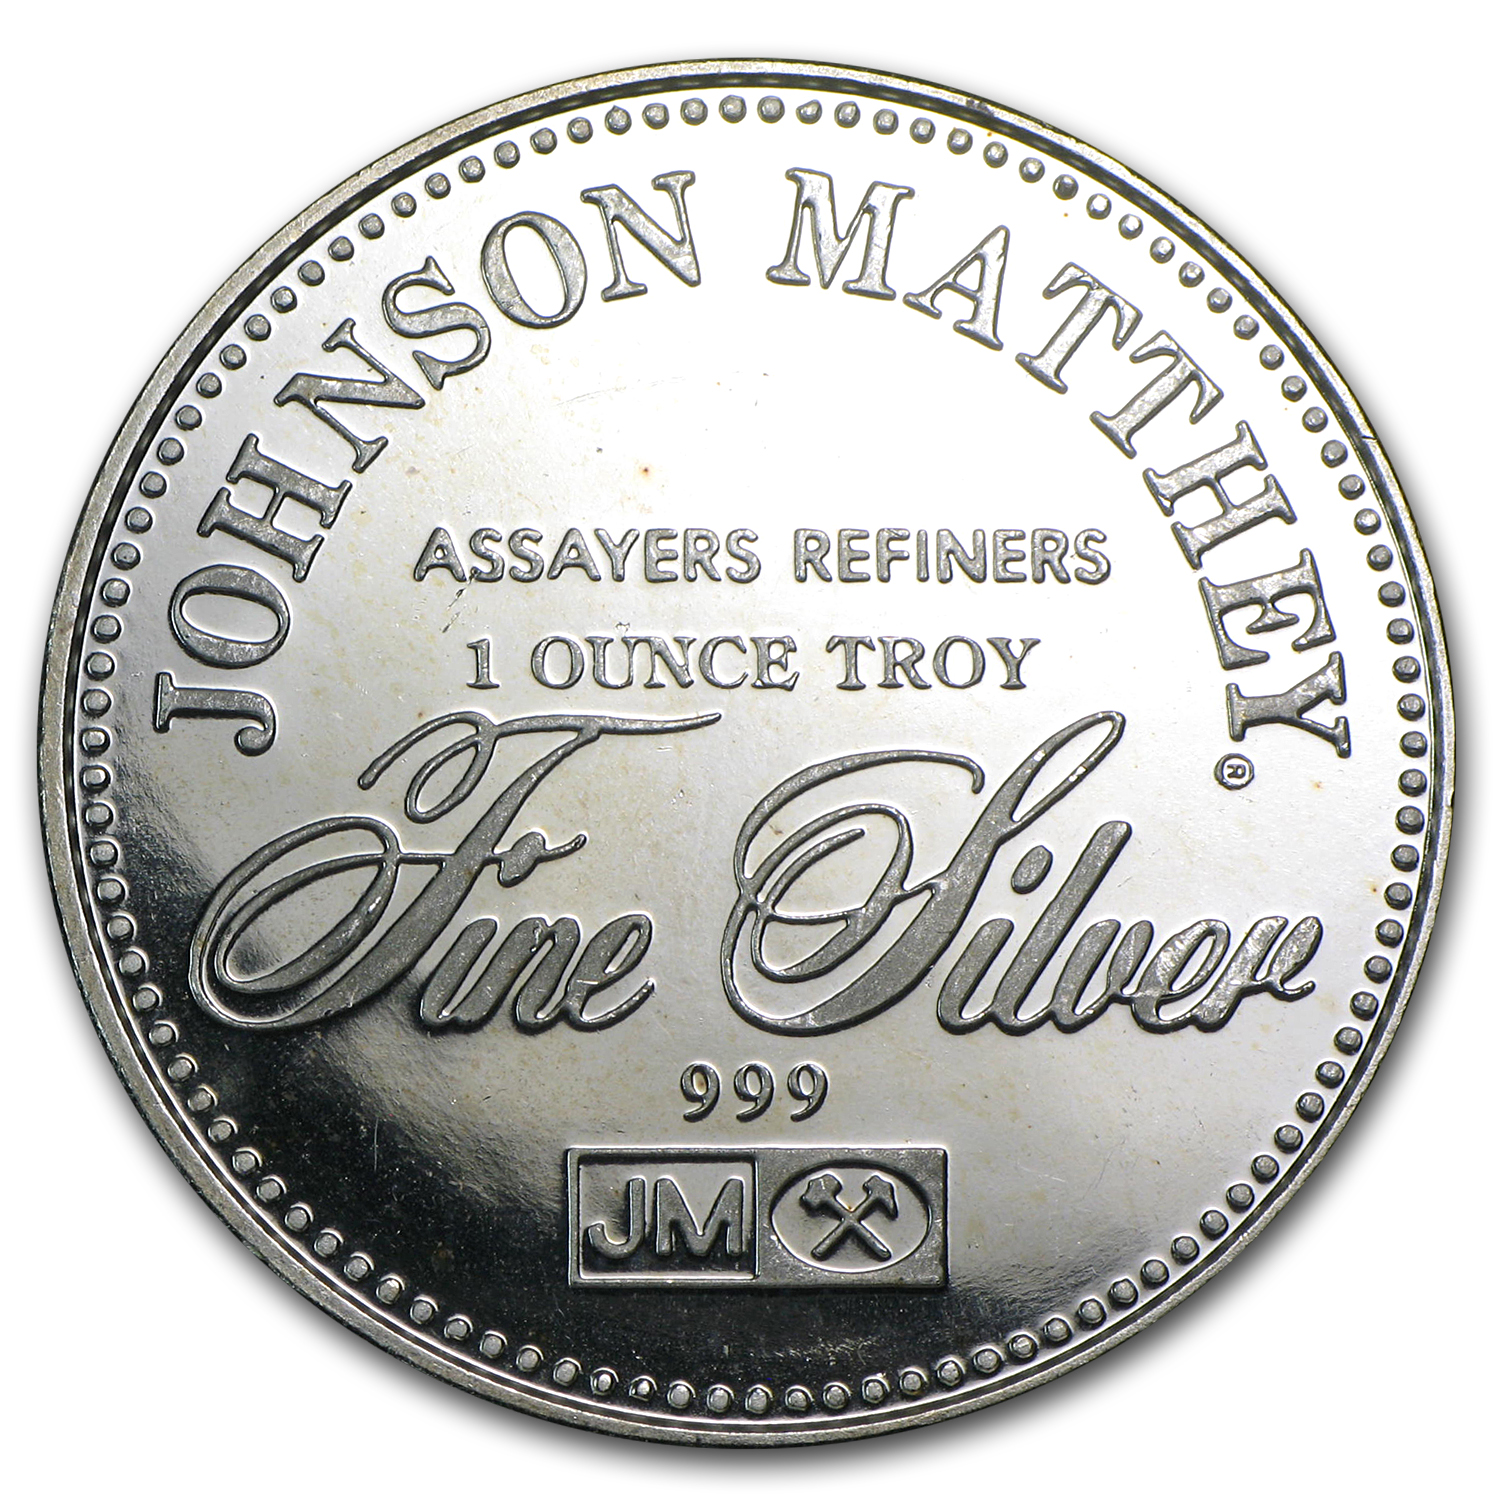 1 oz Silver Rounds - Johnson Matthey (Right to Counsel)